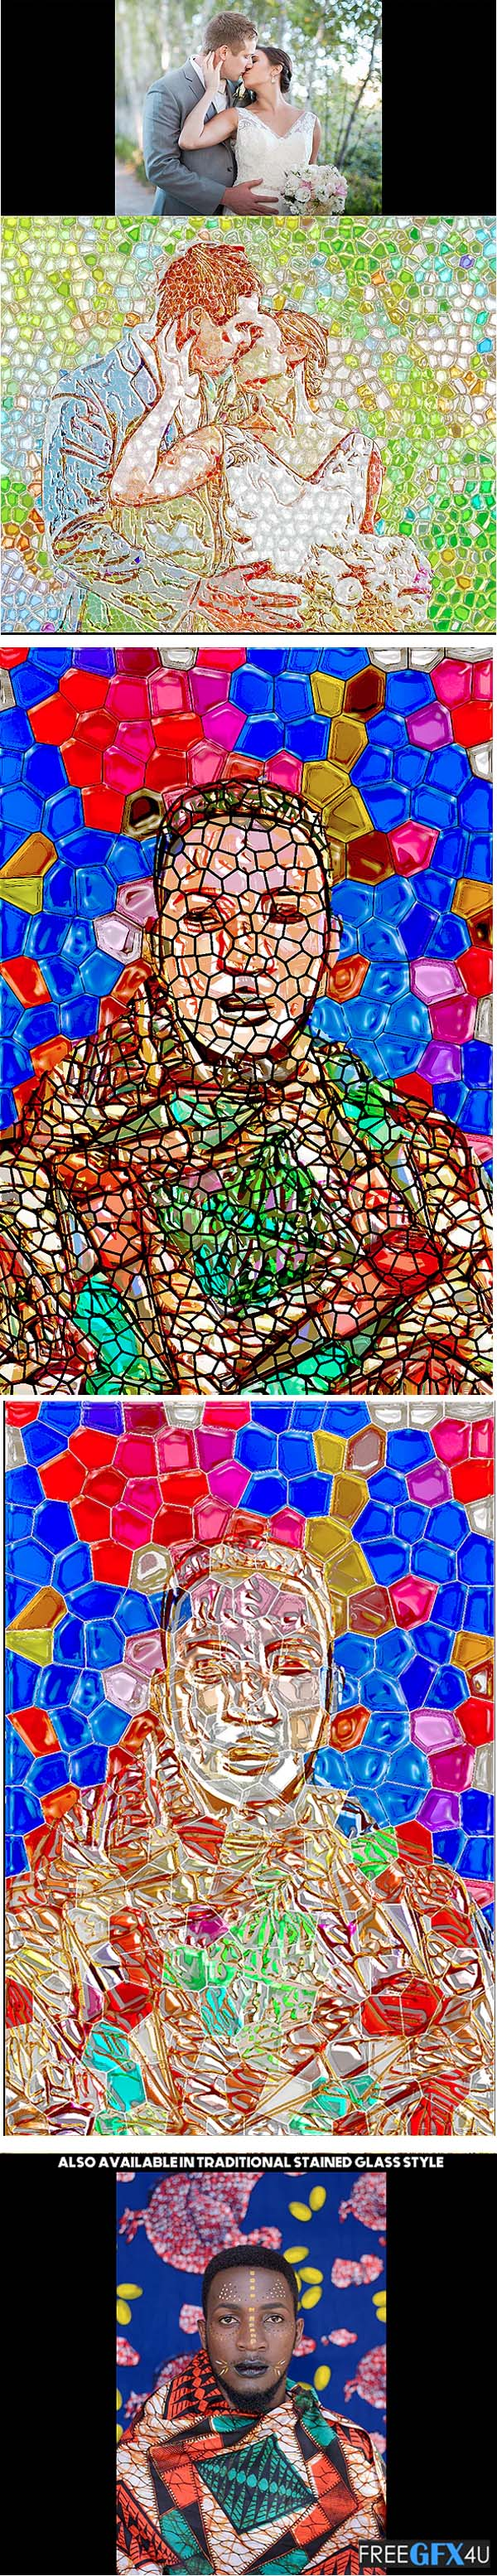 Stained Glass Photoshop Artwork